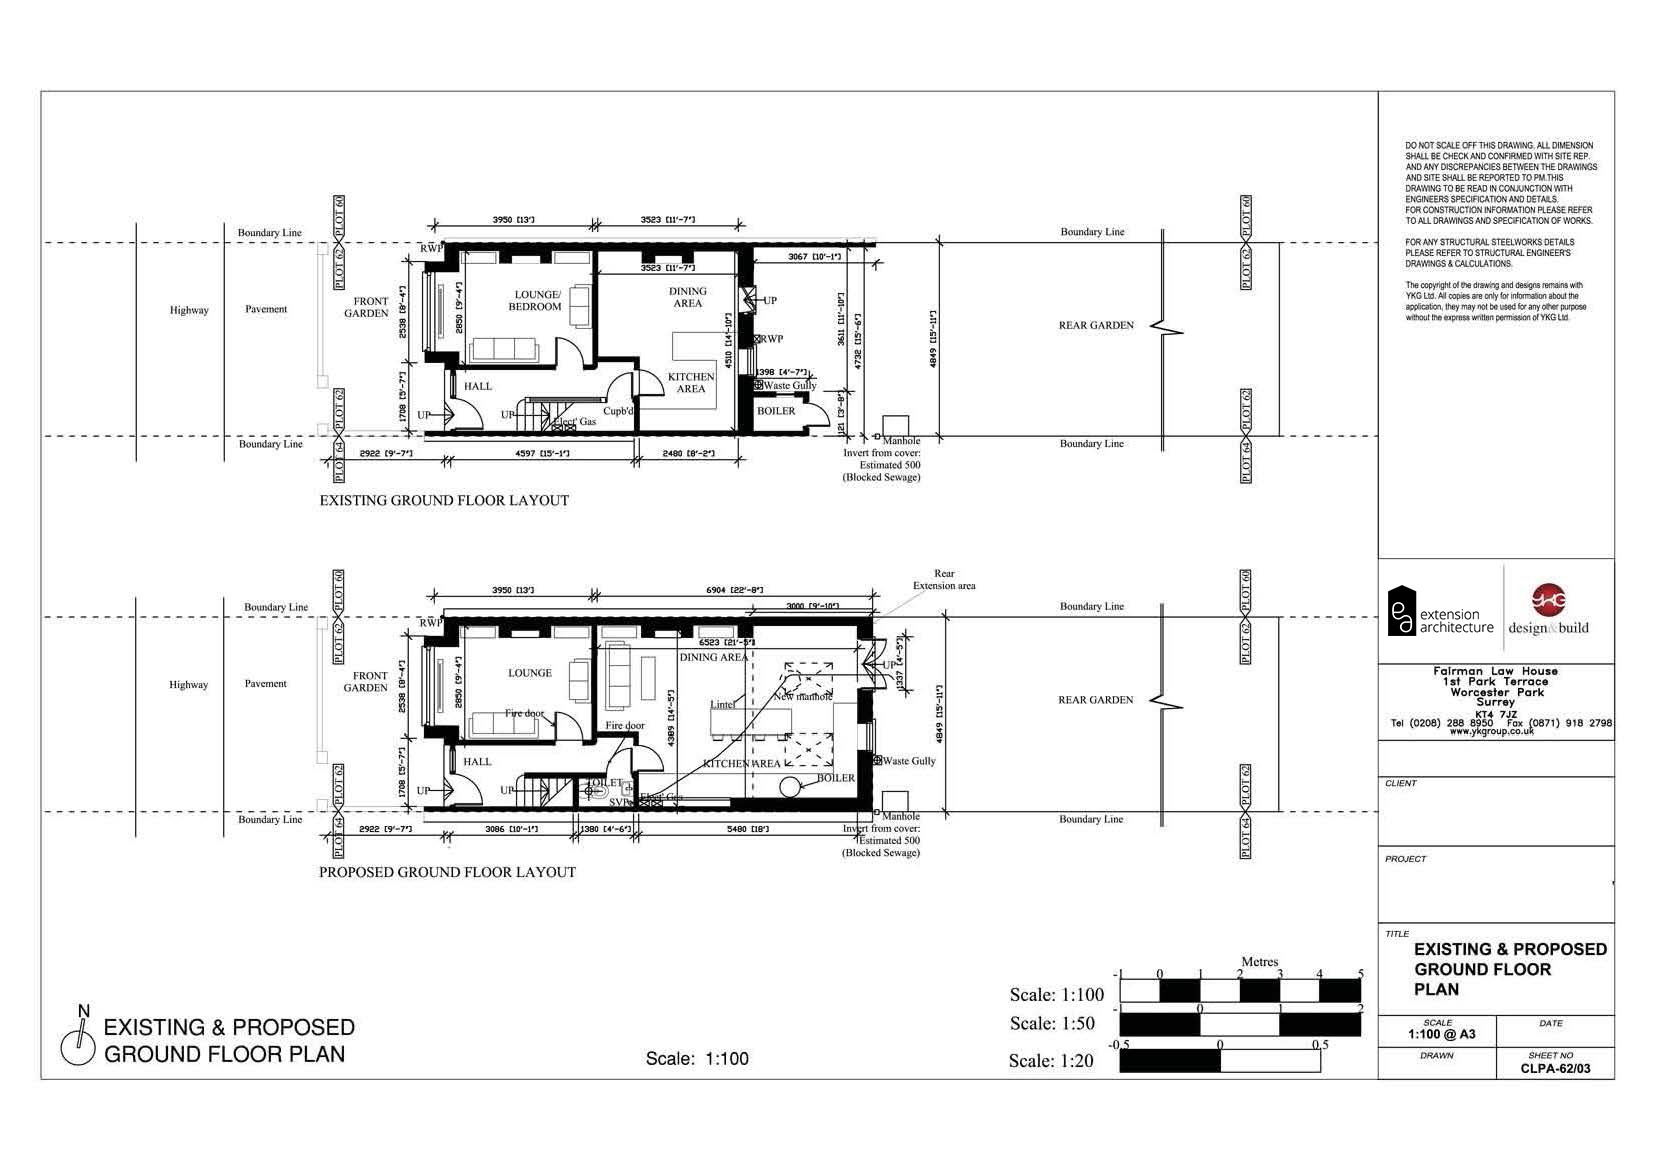 residentail_CPA_single storey